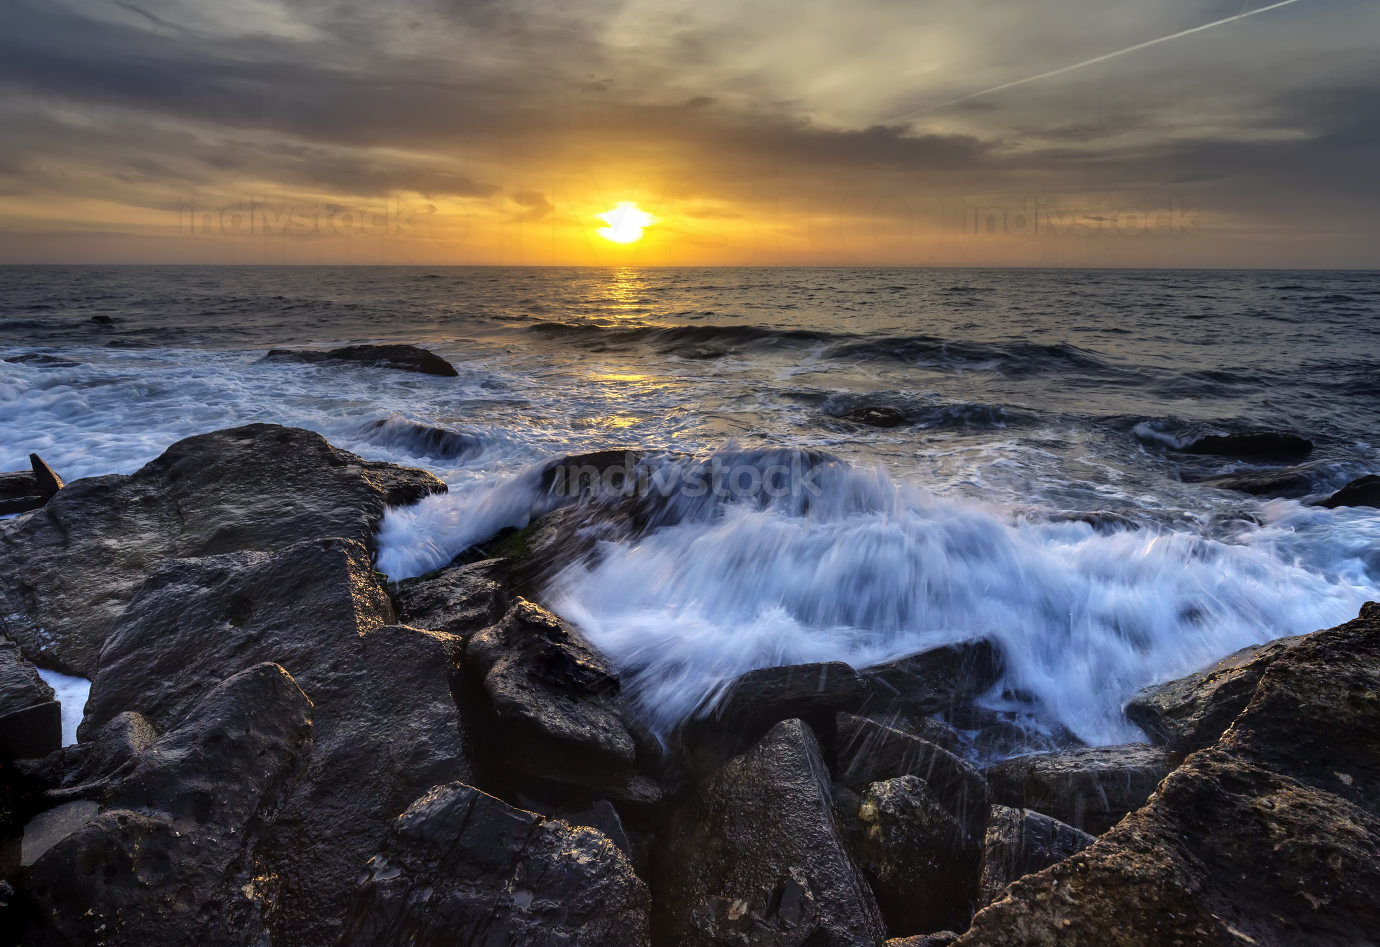 Stormy sea with the colorful sunrise sky at the rocky coastline of the Black Sea